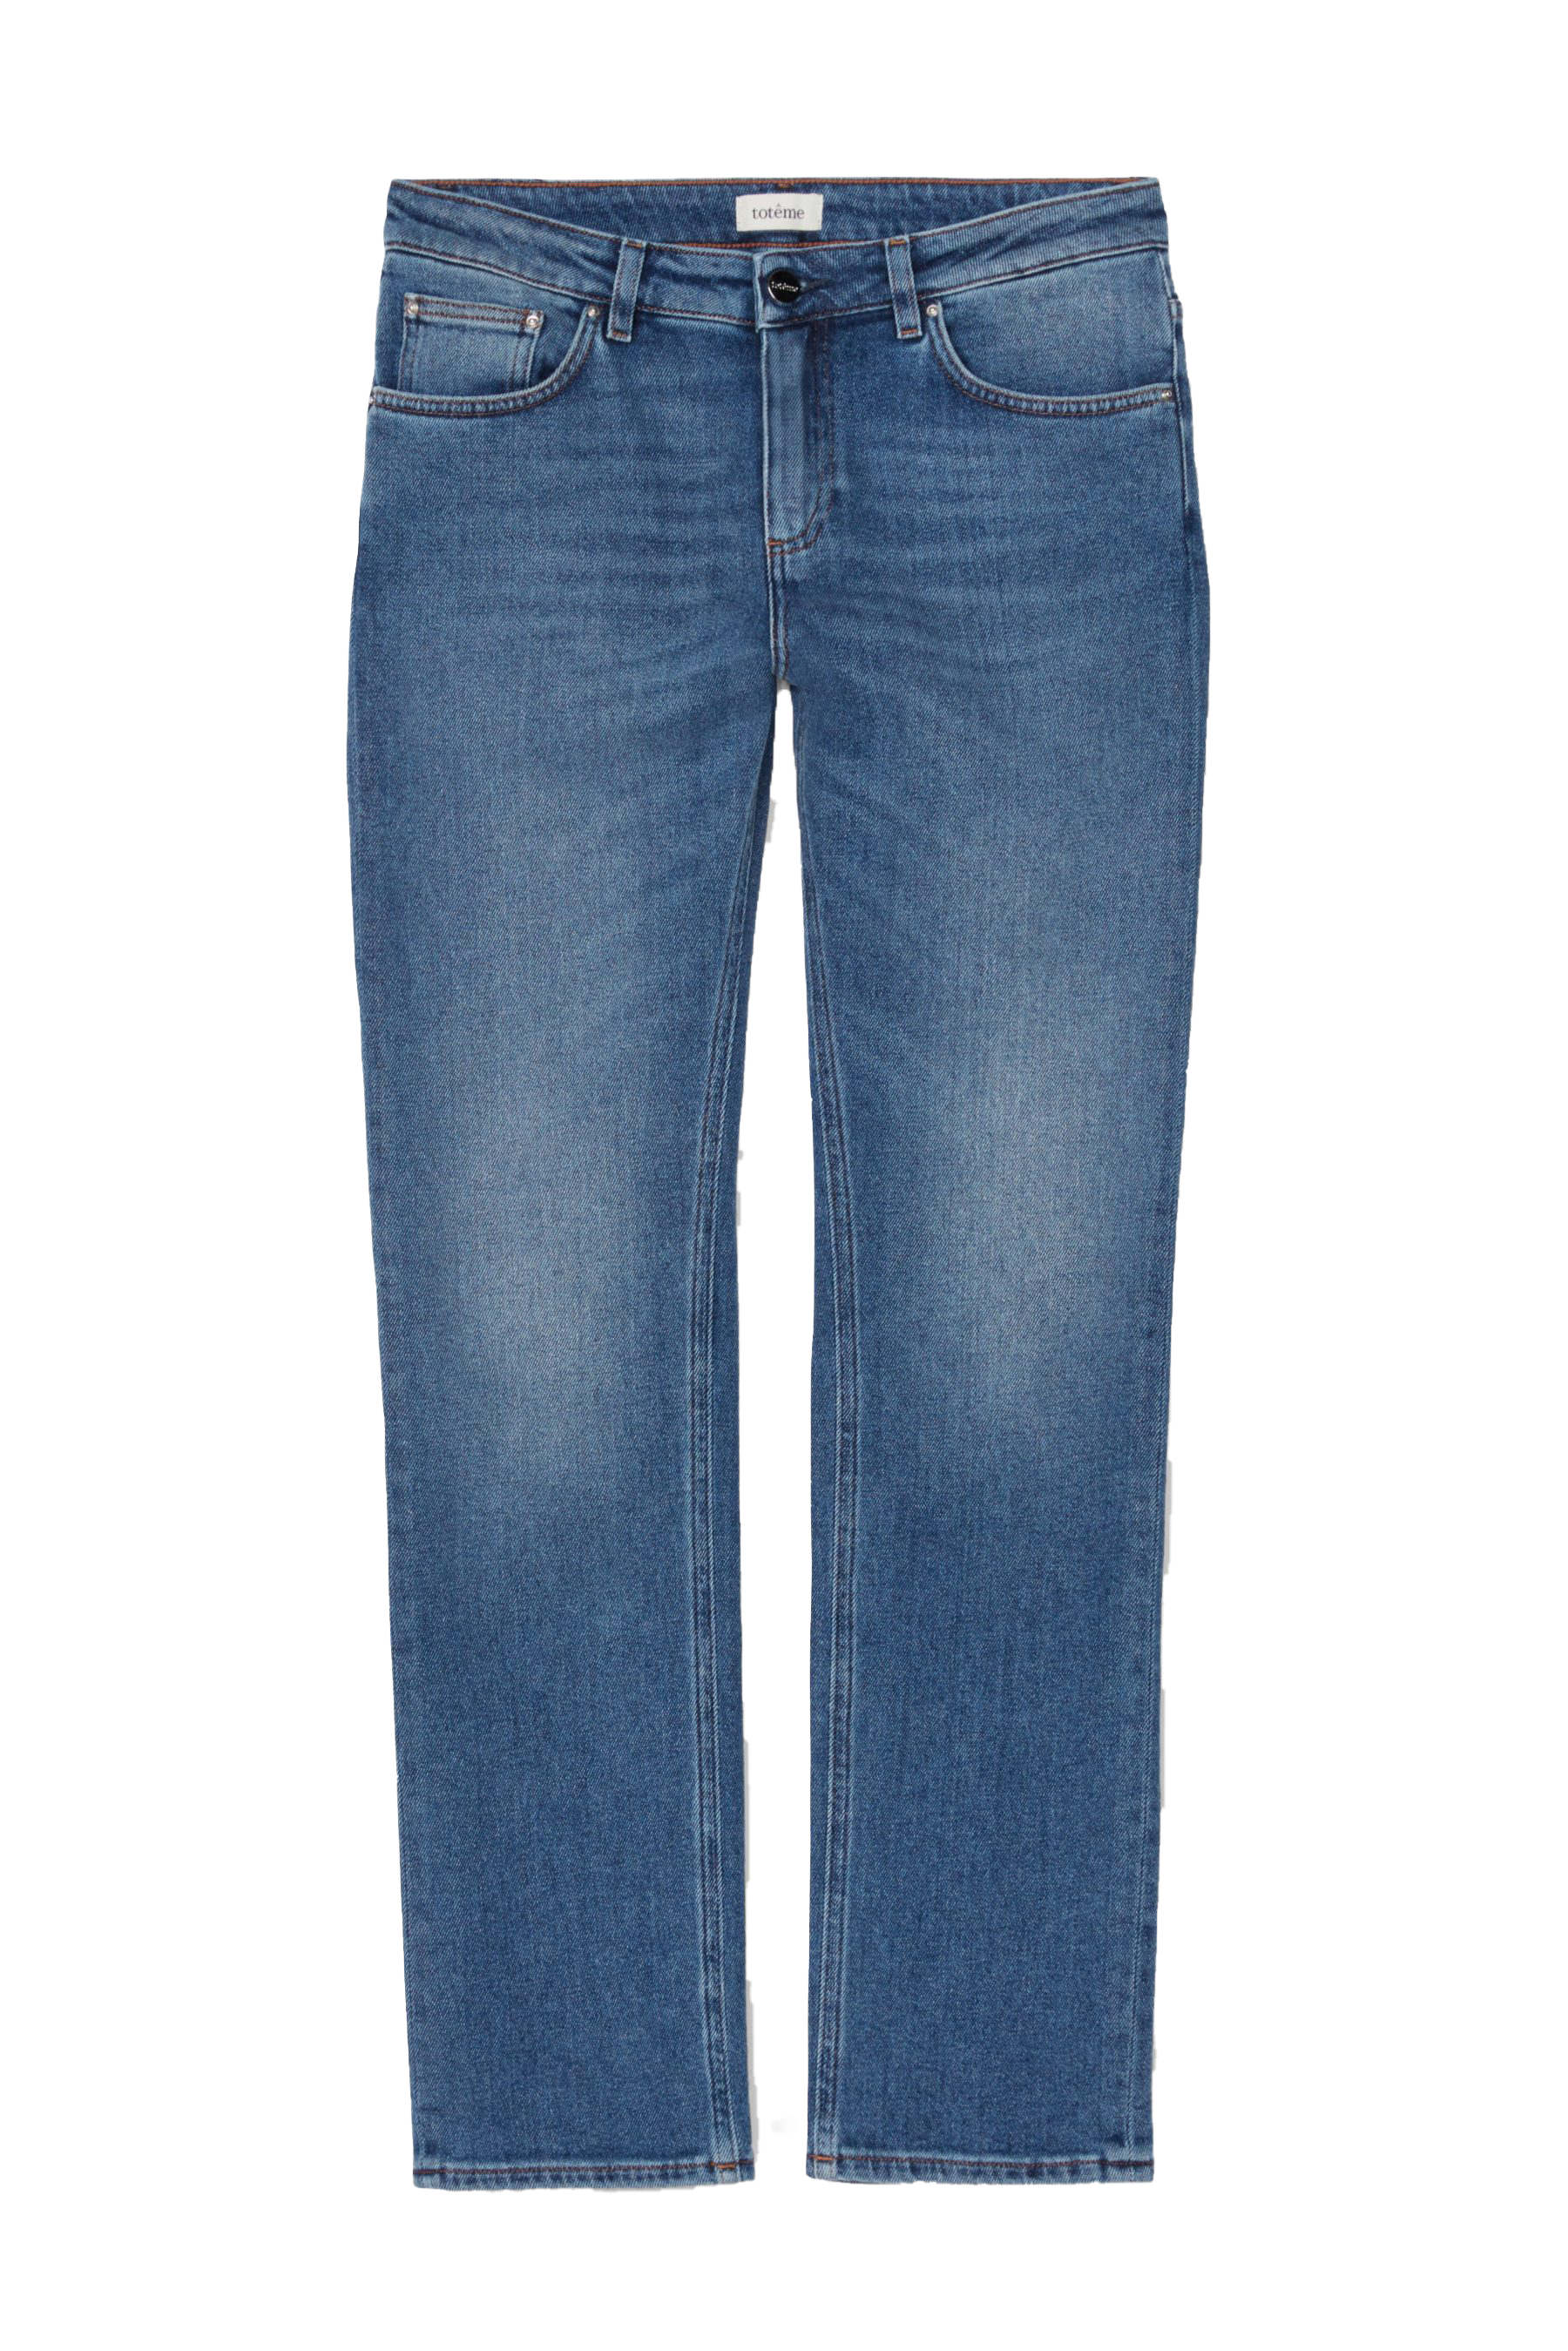 toteme_pf19_straight_mid_blue-1-1800x2699.png